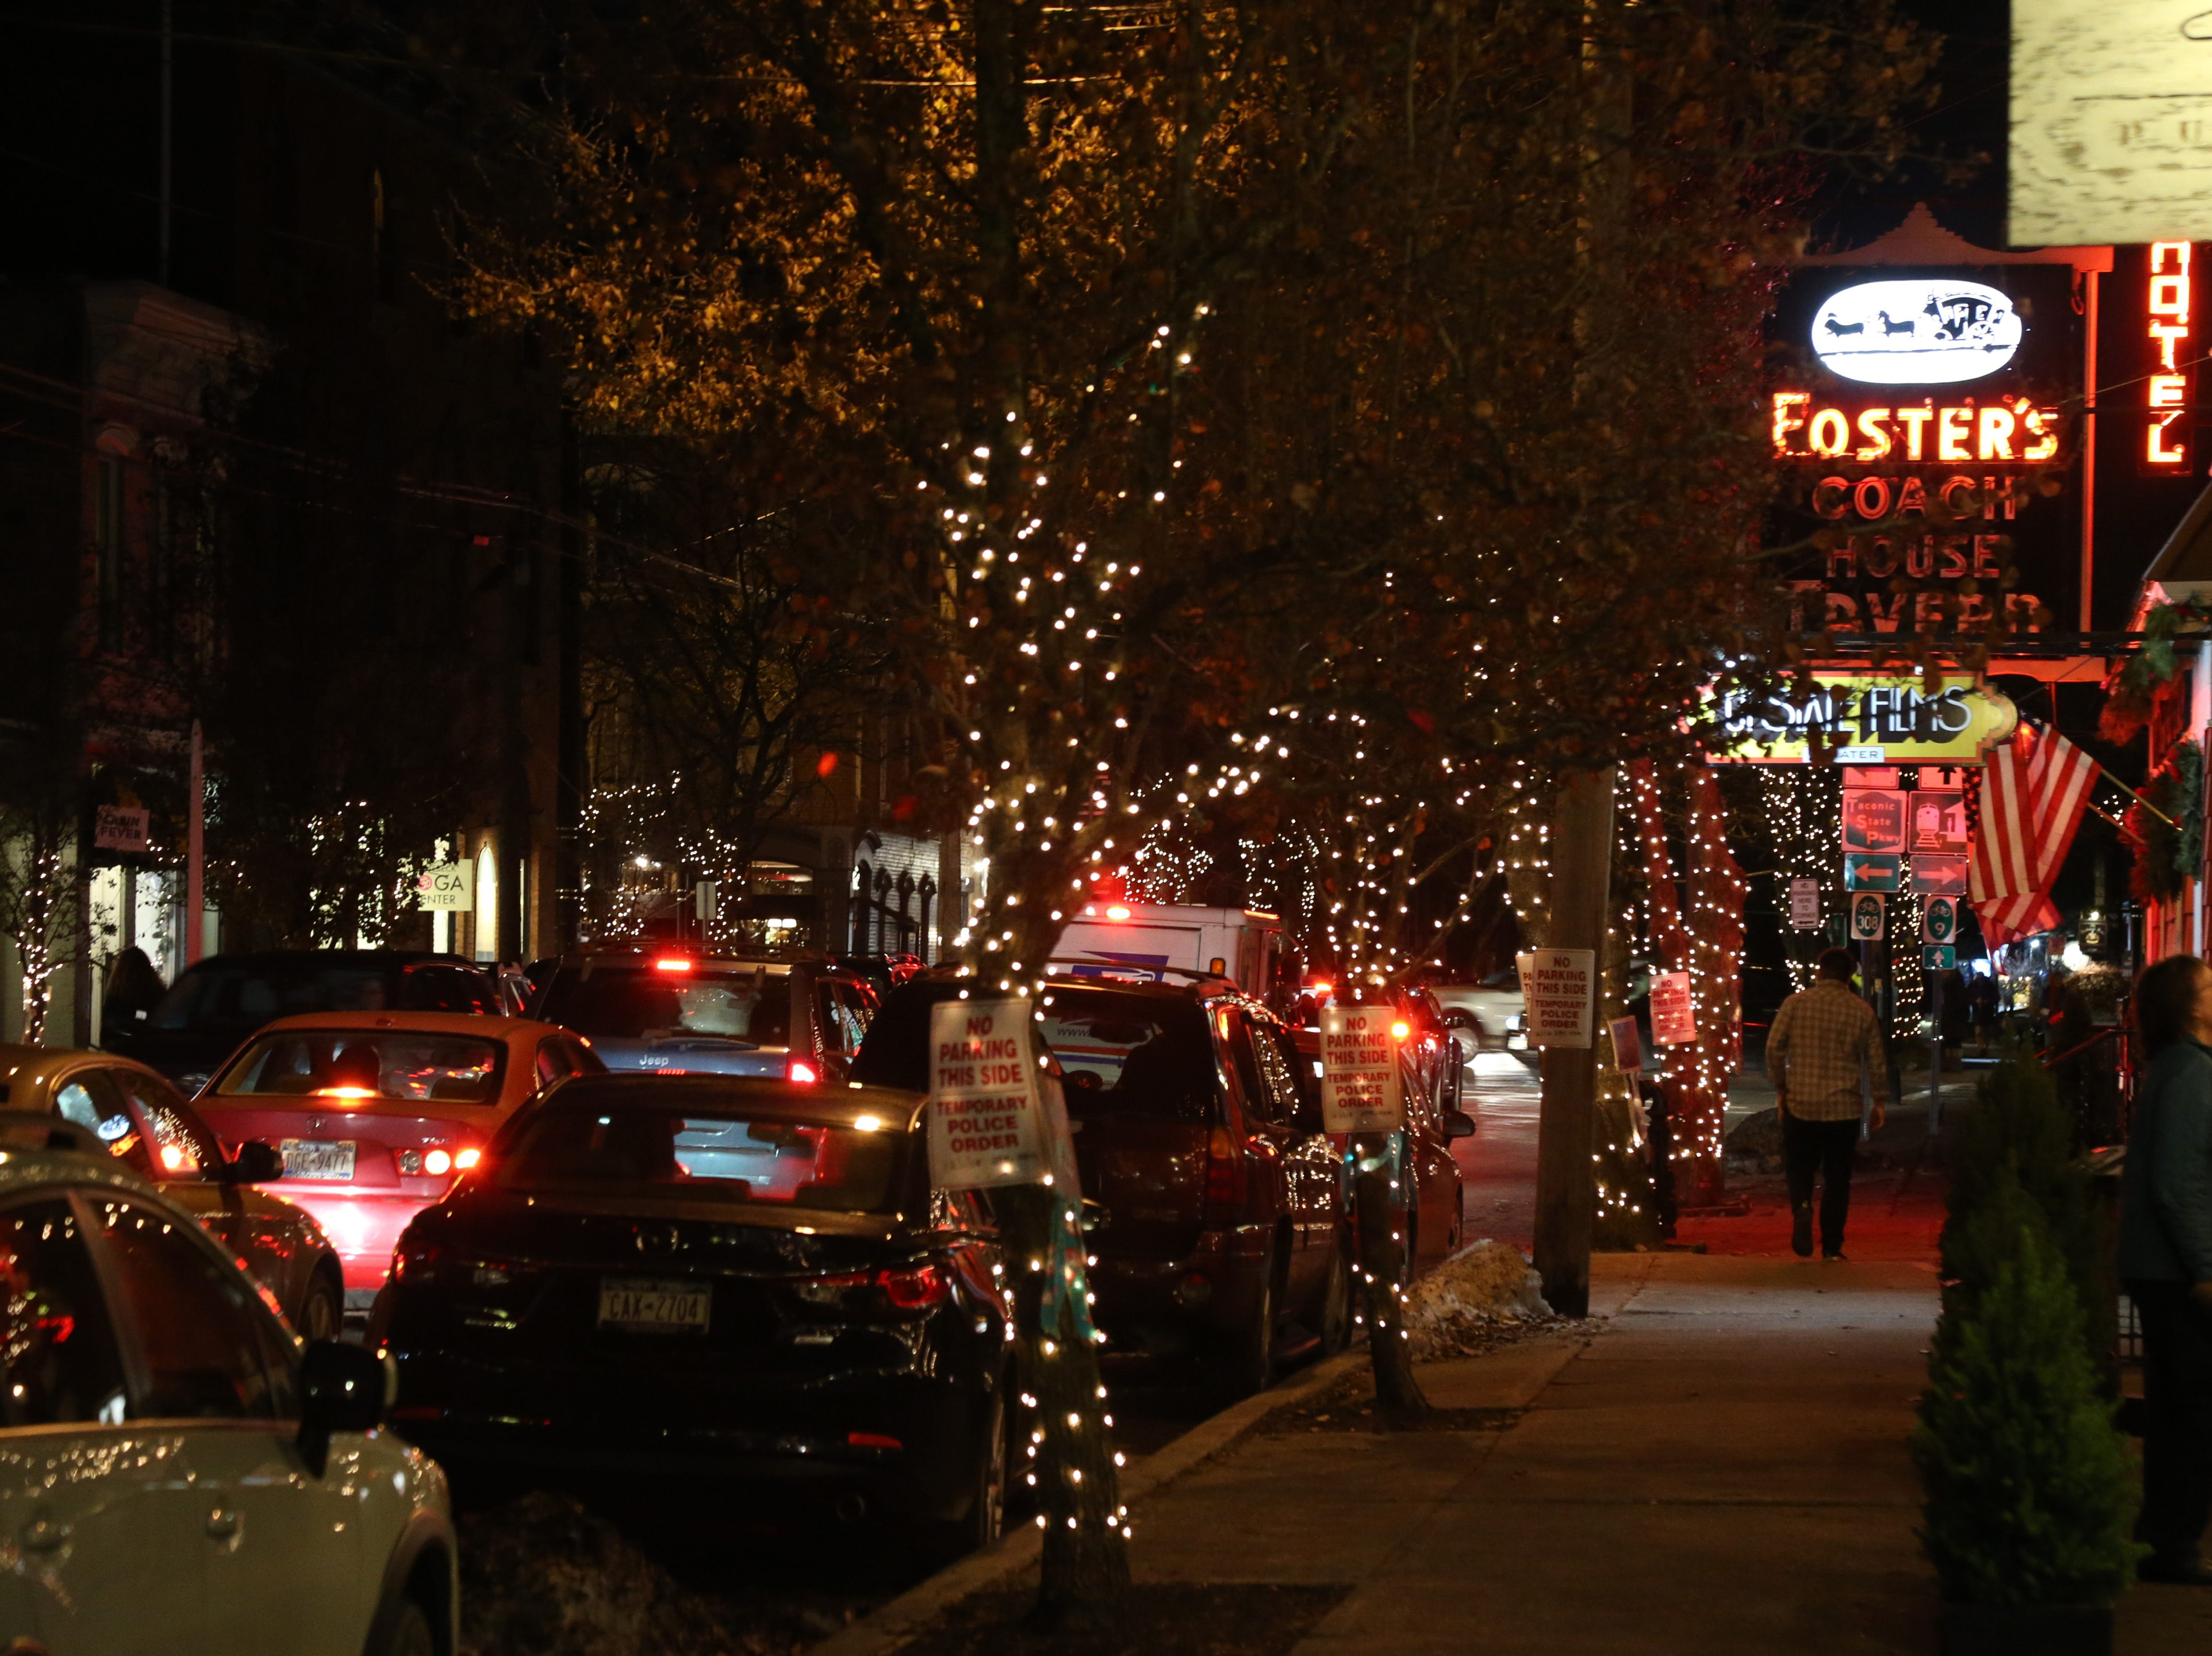 Holiday shopping: Rhinebeck offers country chic, celebrity cred in a walkable downtown